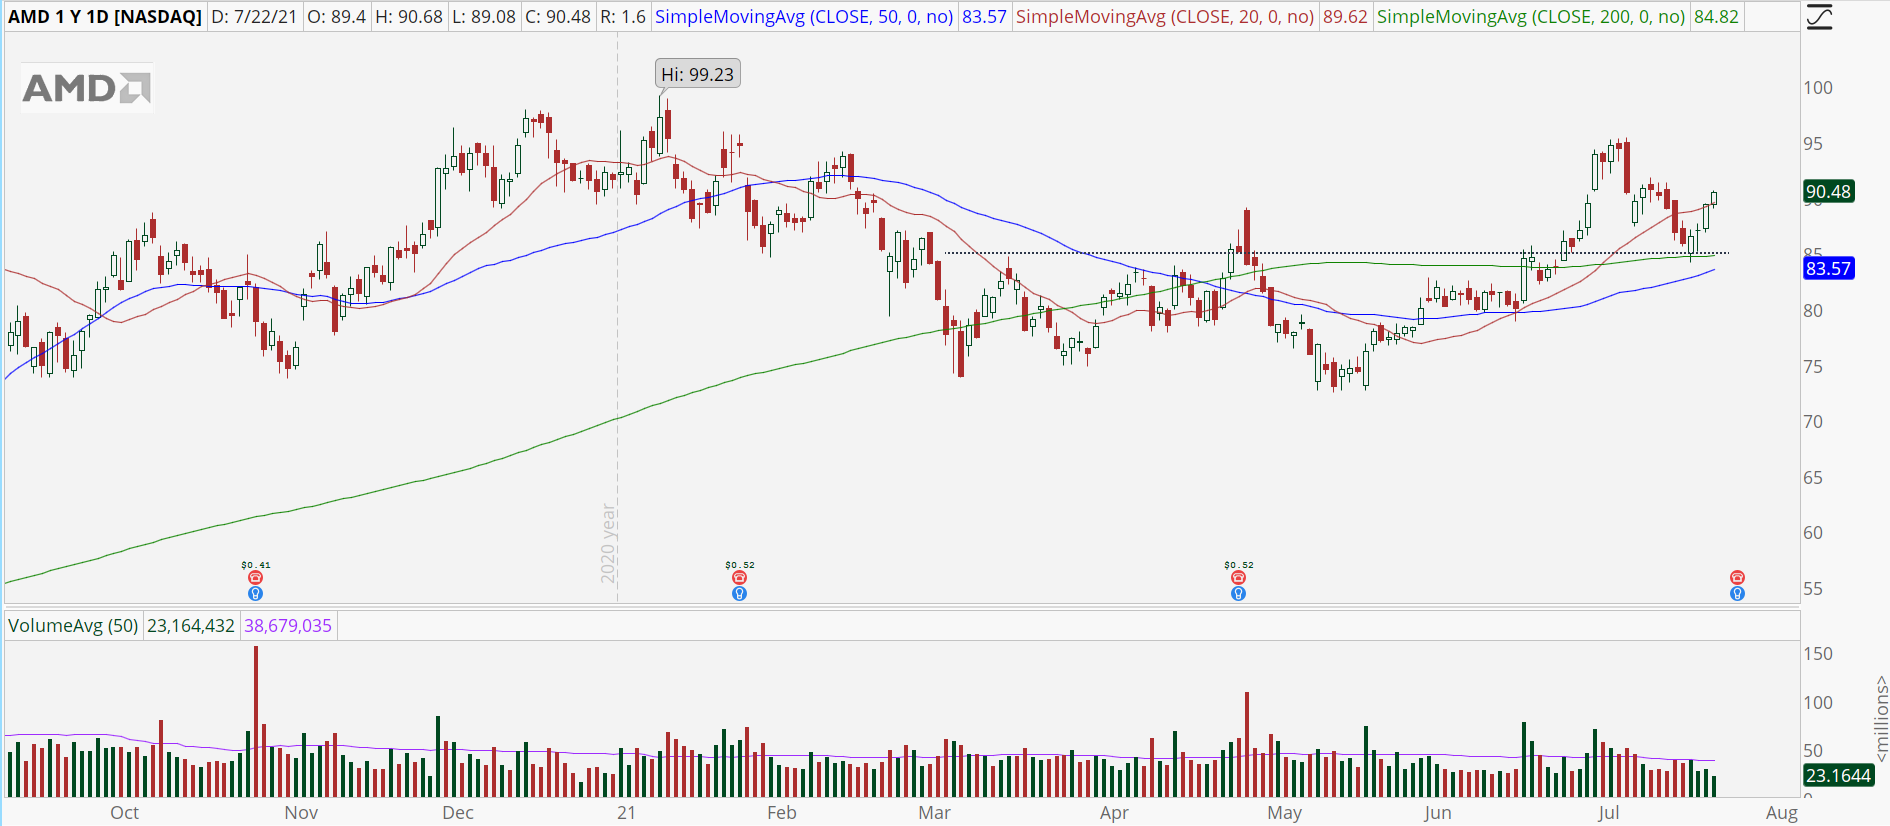 Advanced Micro Devices (AMD) daily chart with bullish reversal